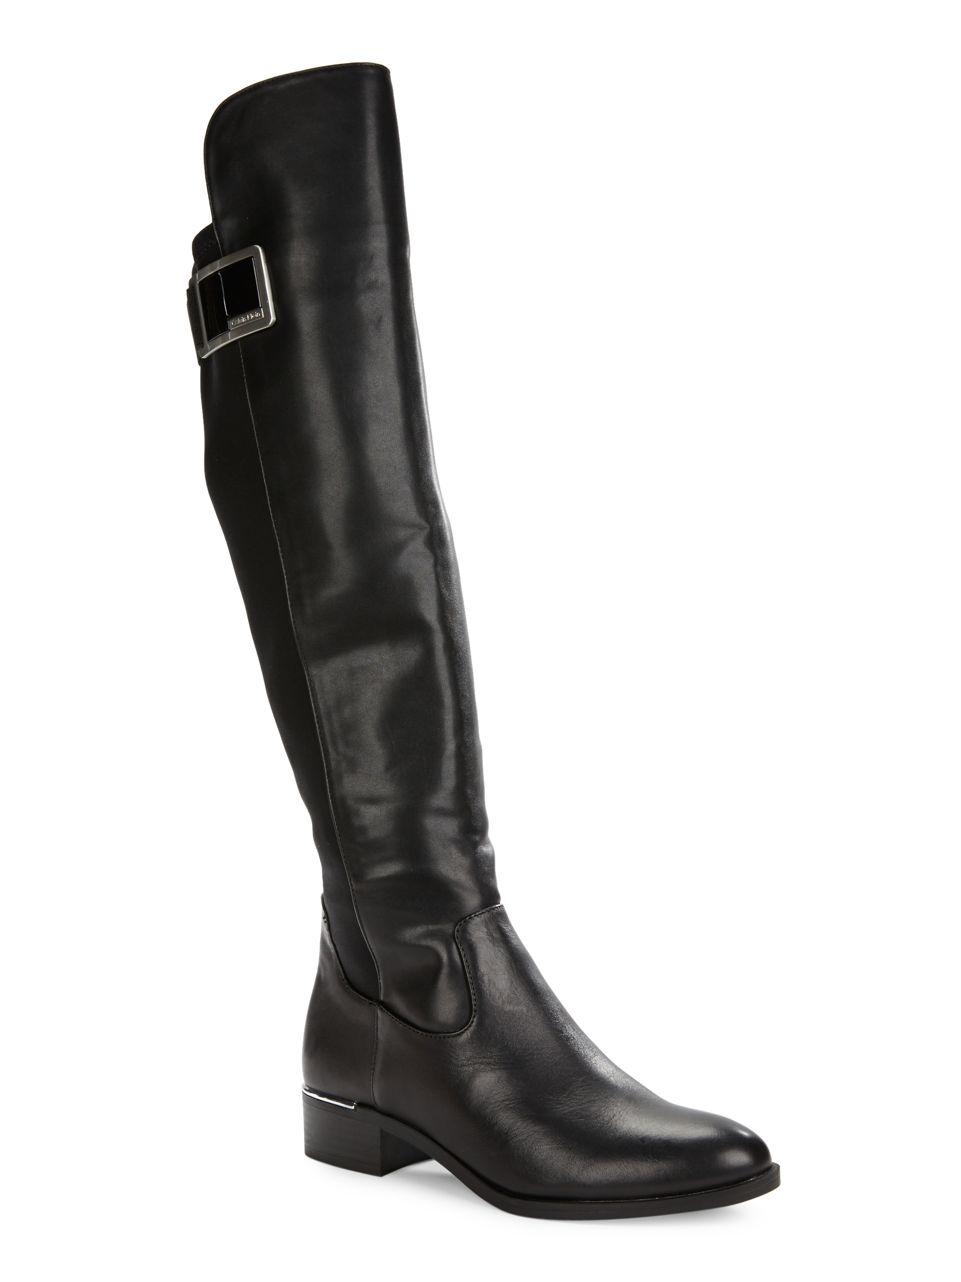 calvin klein cyra knee high leather boots in black lyst